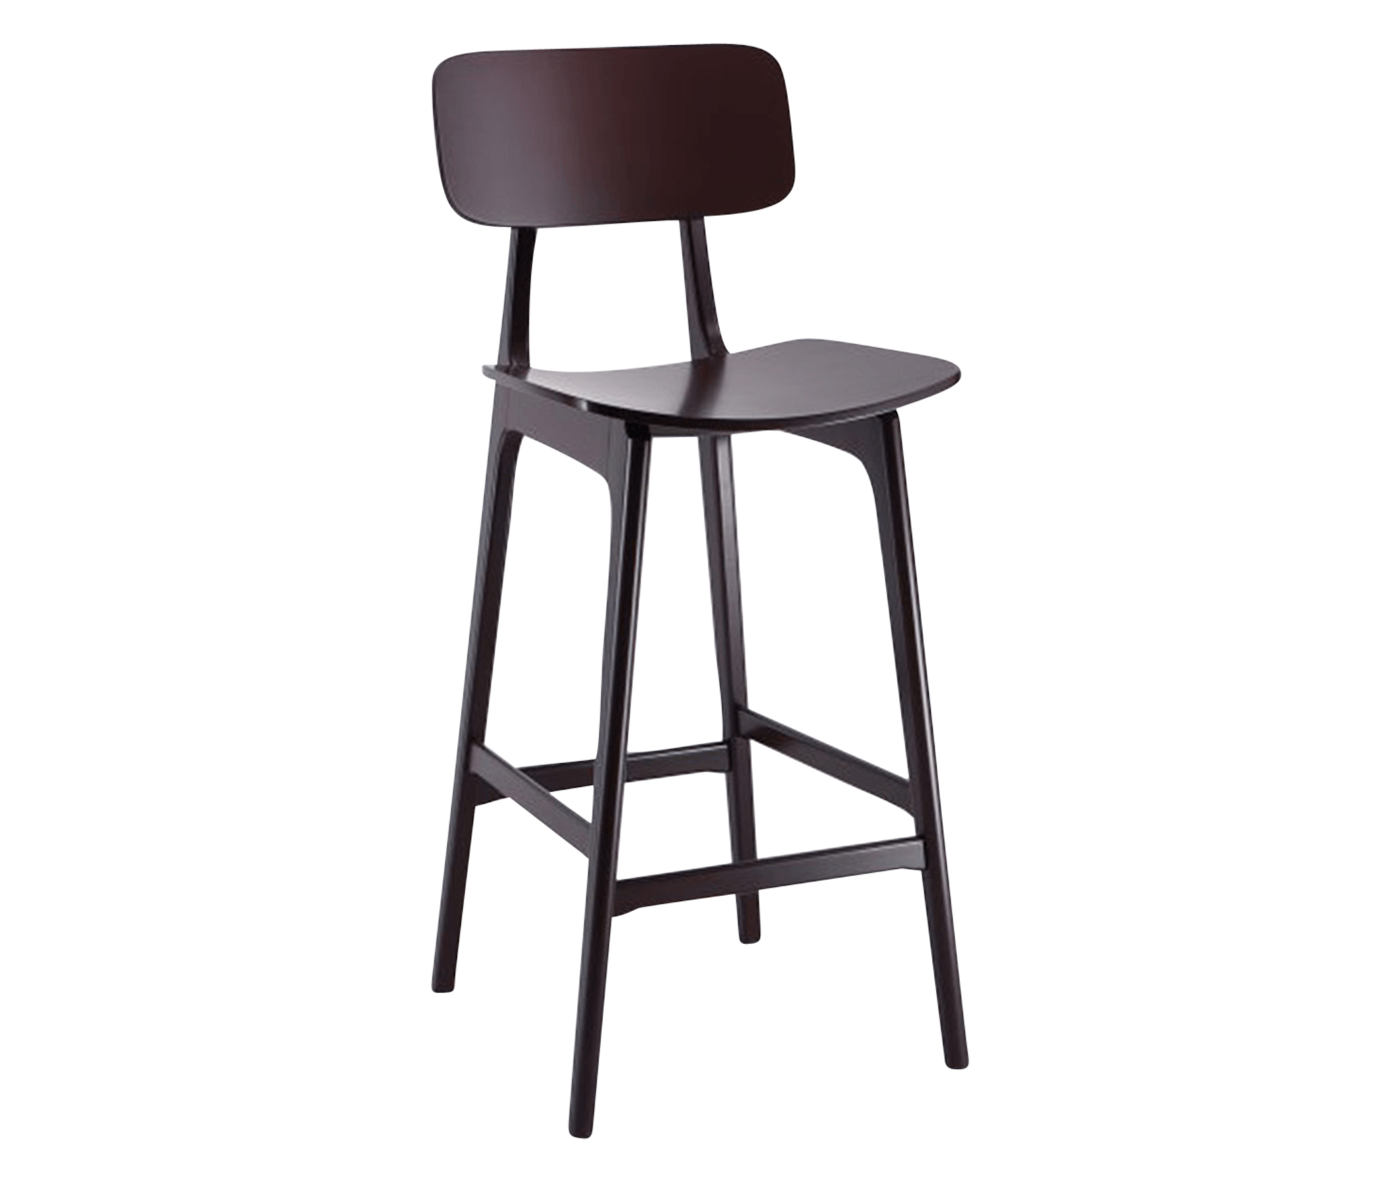 Anna SG Stool / Products for People